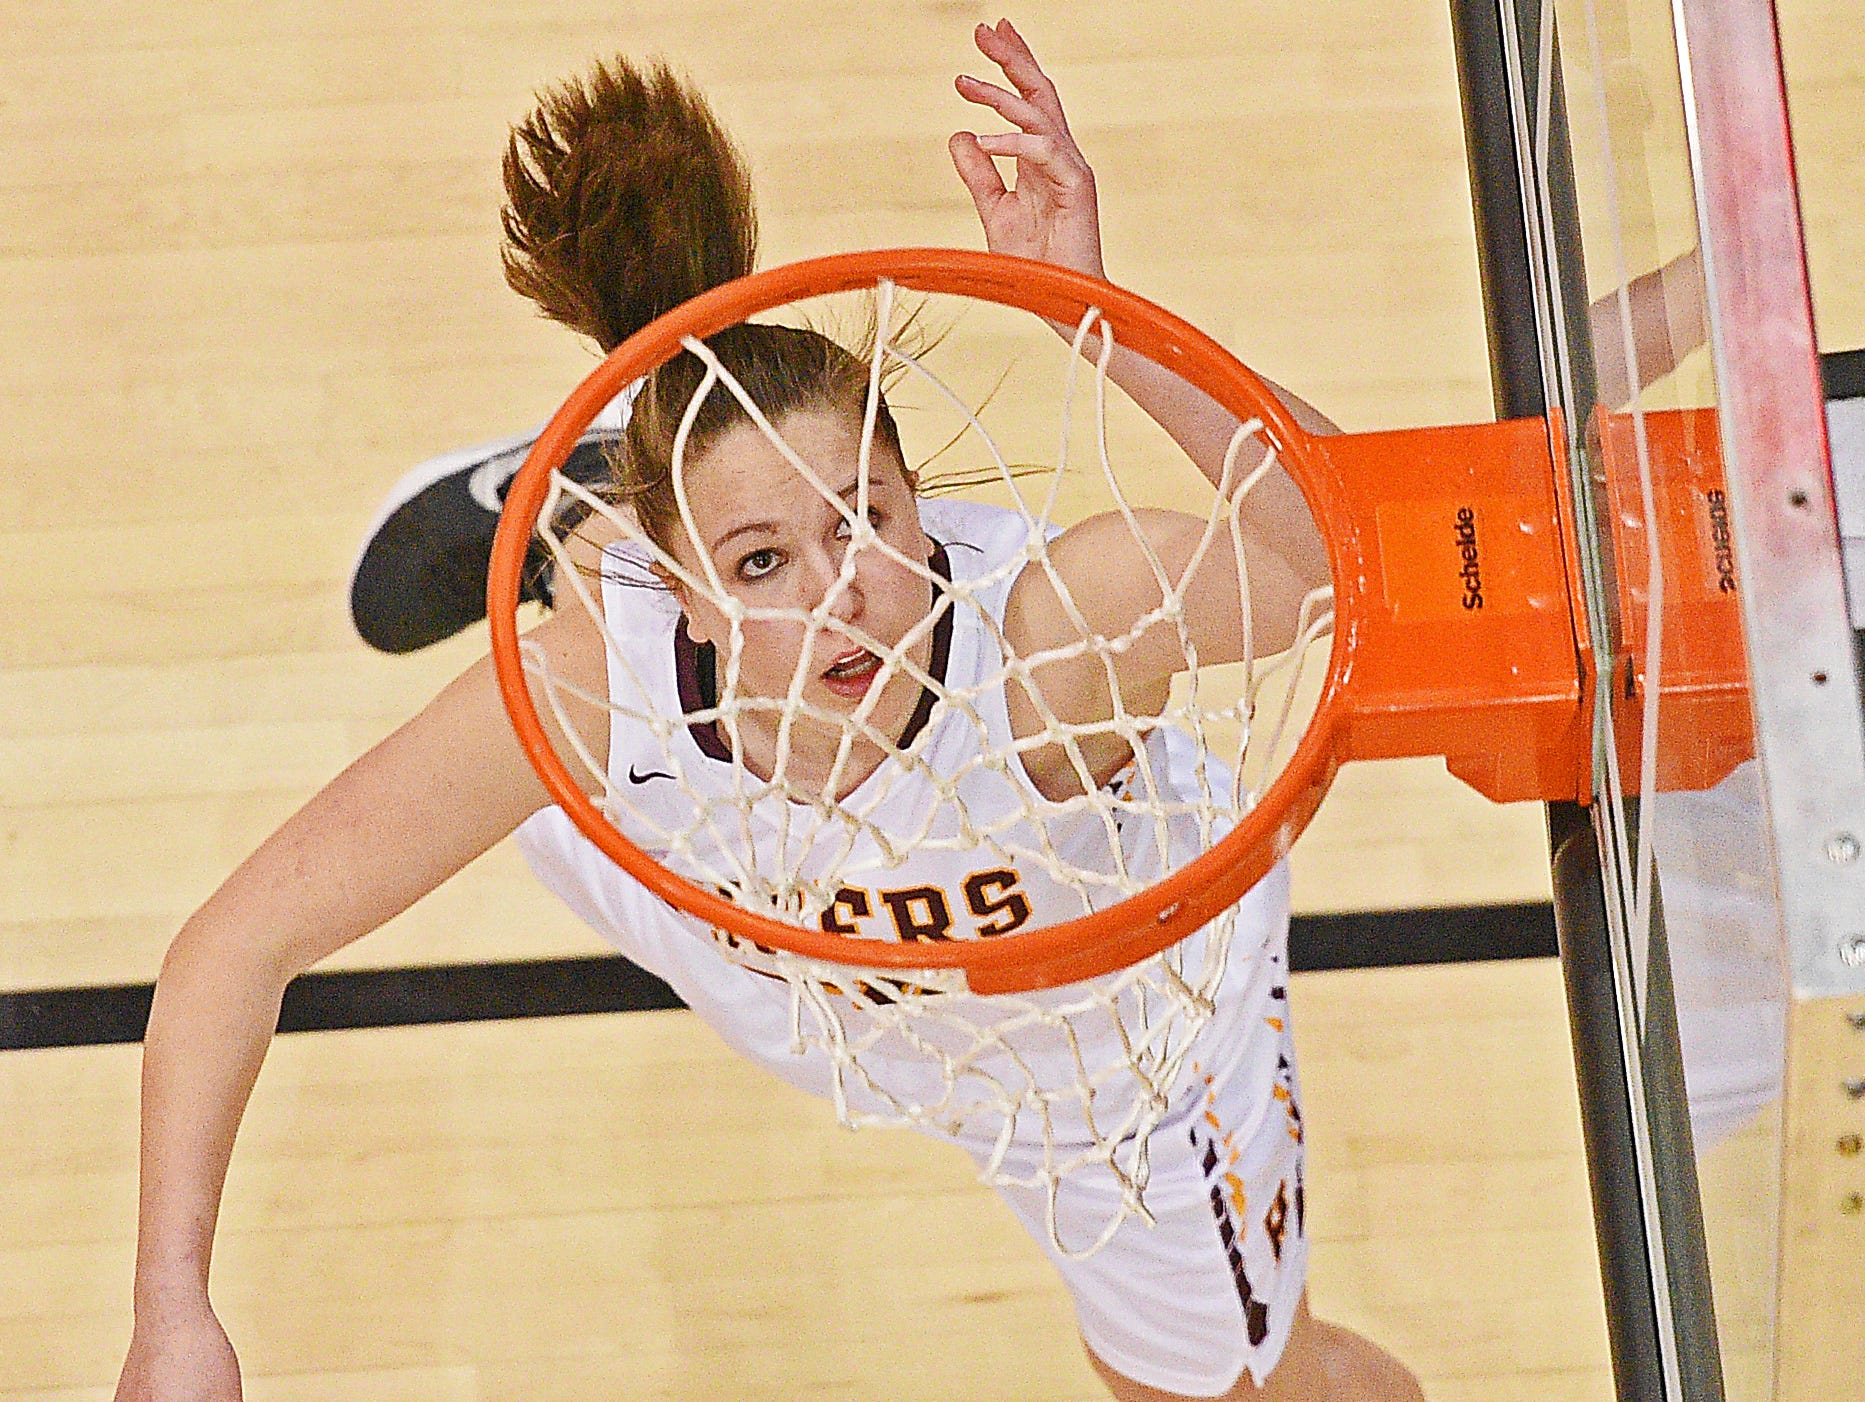 Harrisburg's Jeniah Ugofsky (30) goes up for a shot during a 2017 SDHSAA Class AA State Girls Basketball semifinal game against Rapid City Central Friday, March 17, 2017, at Rushmore Plaza Civic Center in Rapid City. Harrisburg beat Rapid City Central 49-44, and will play in Saturday's final.